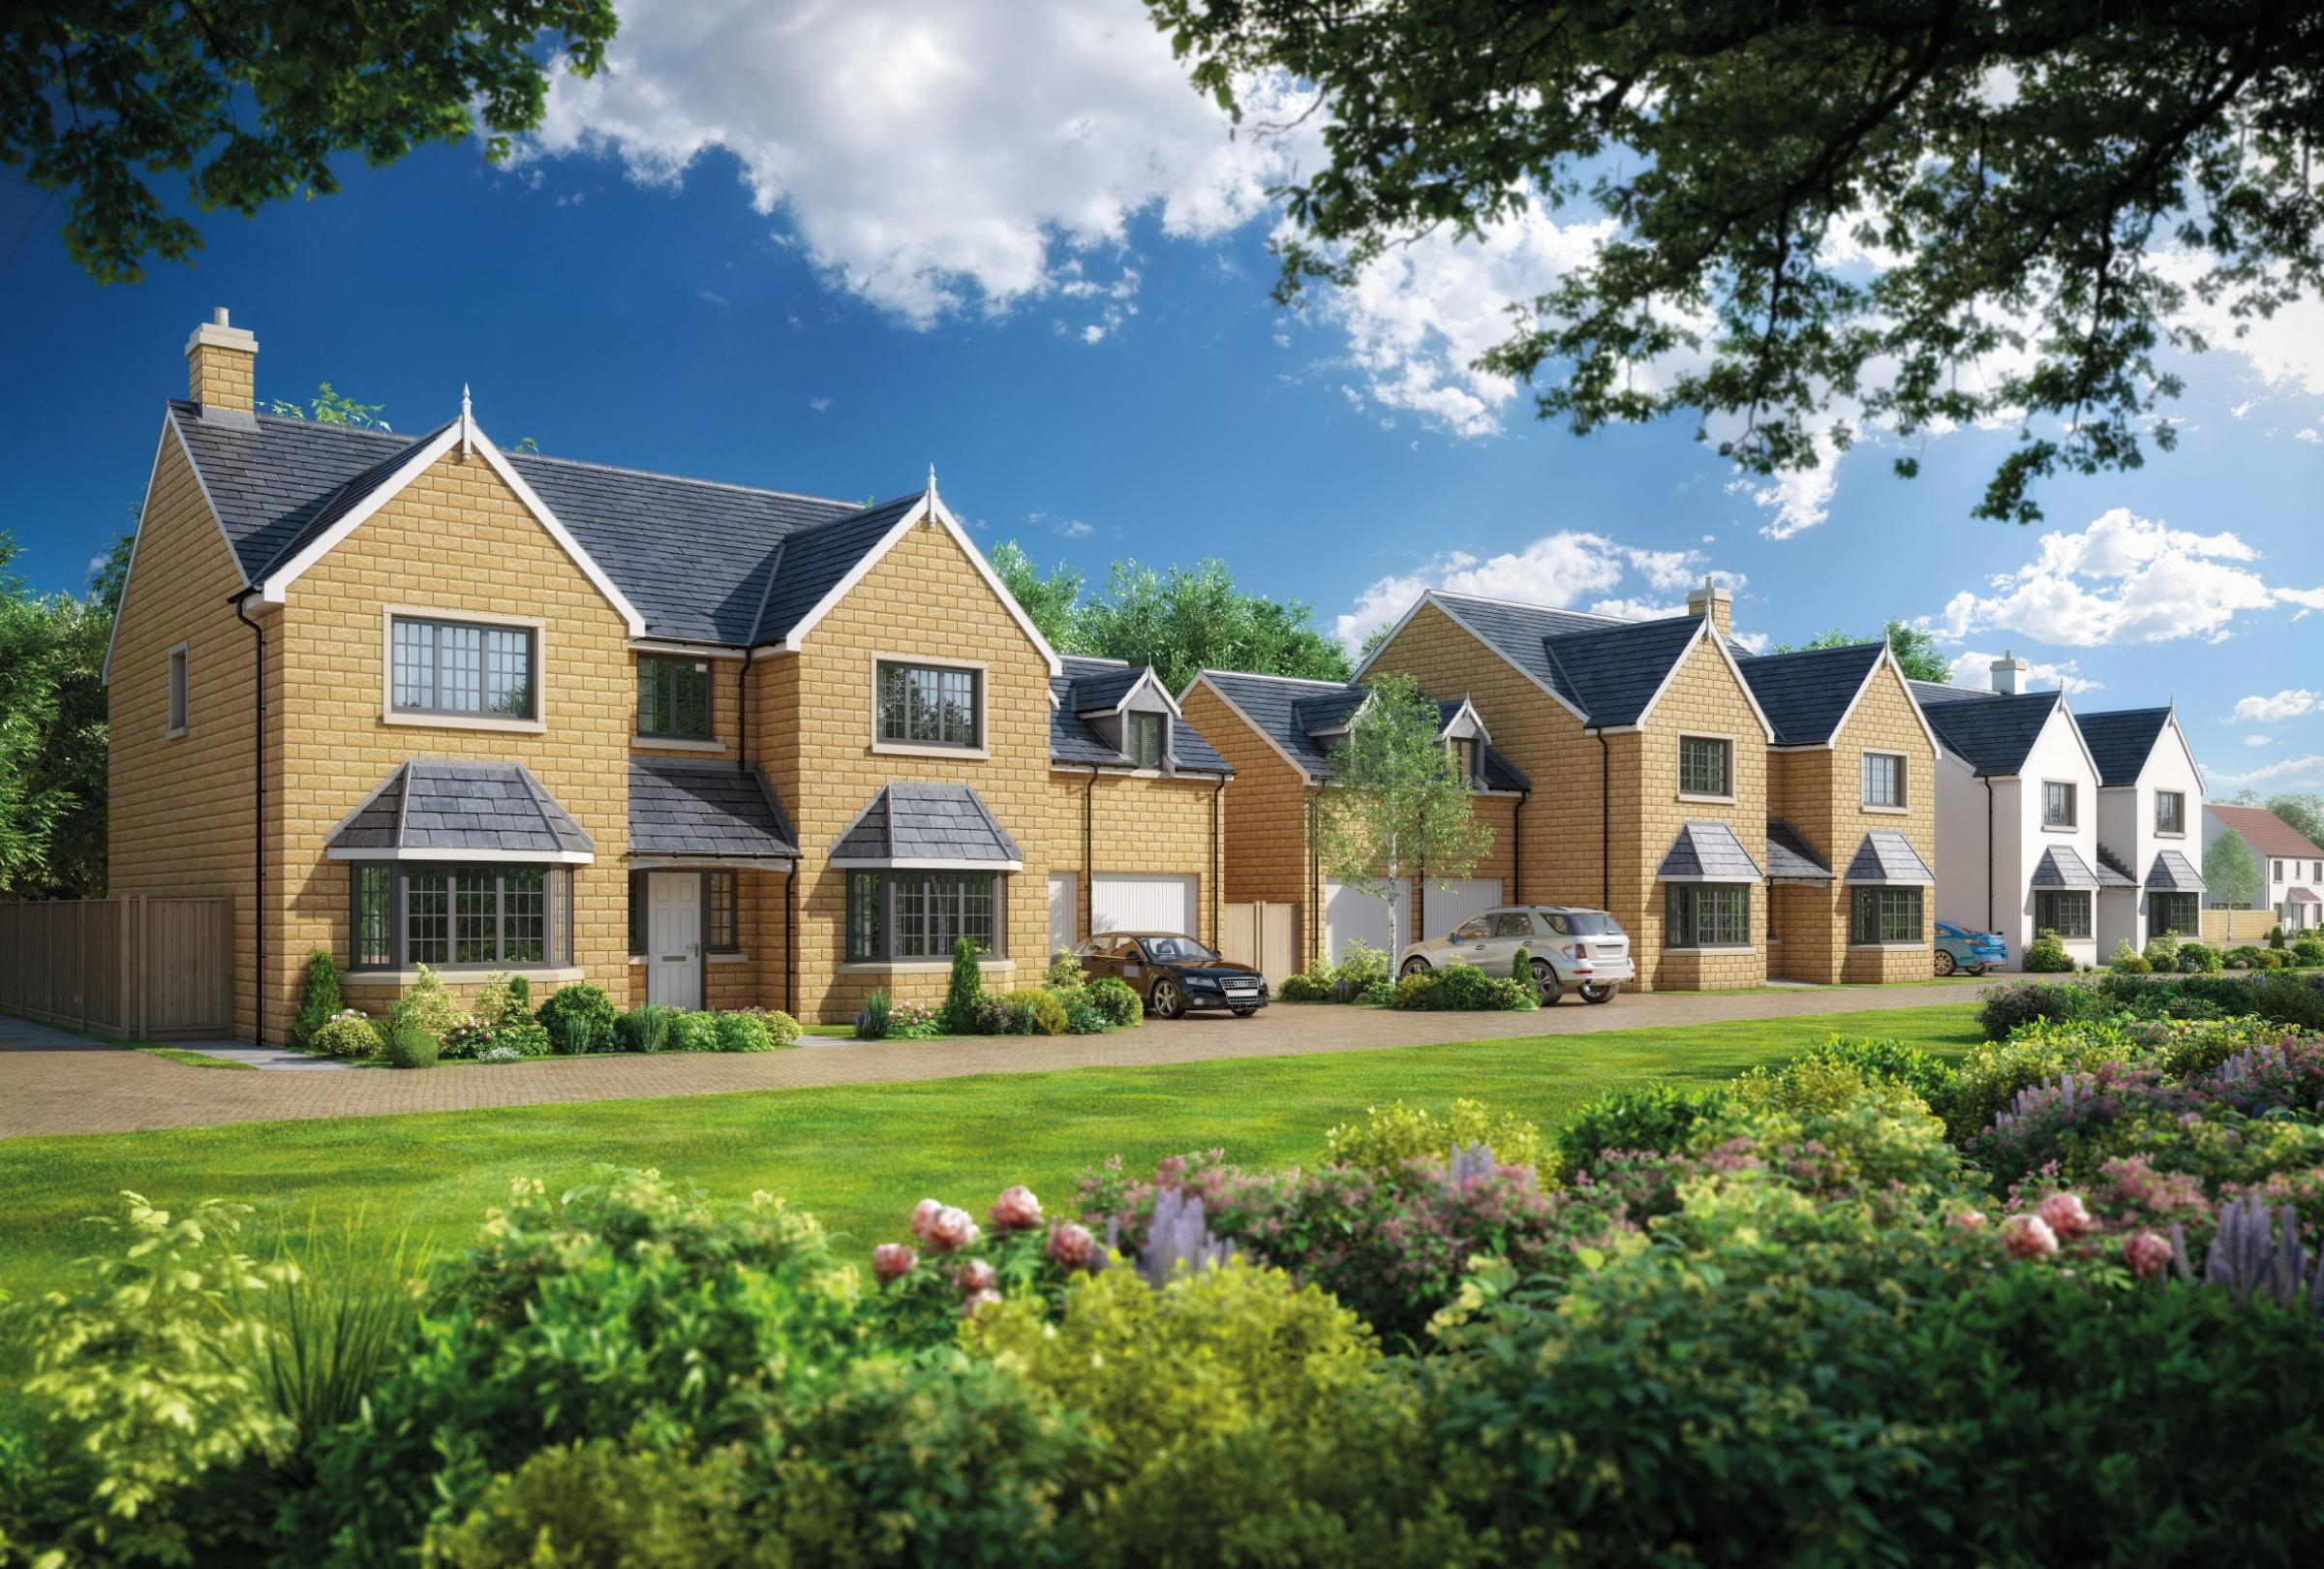 New homes bring local benefits